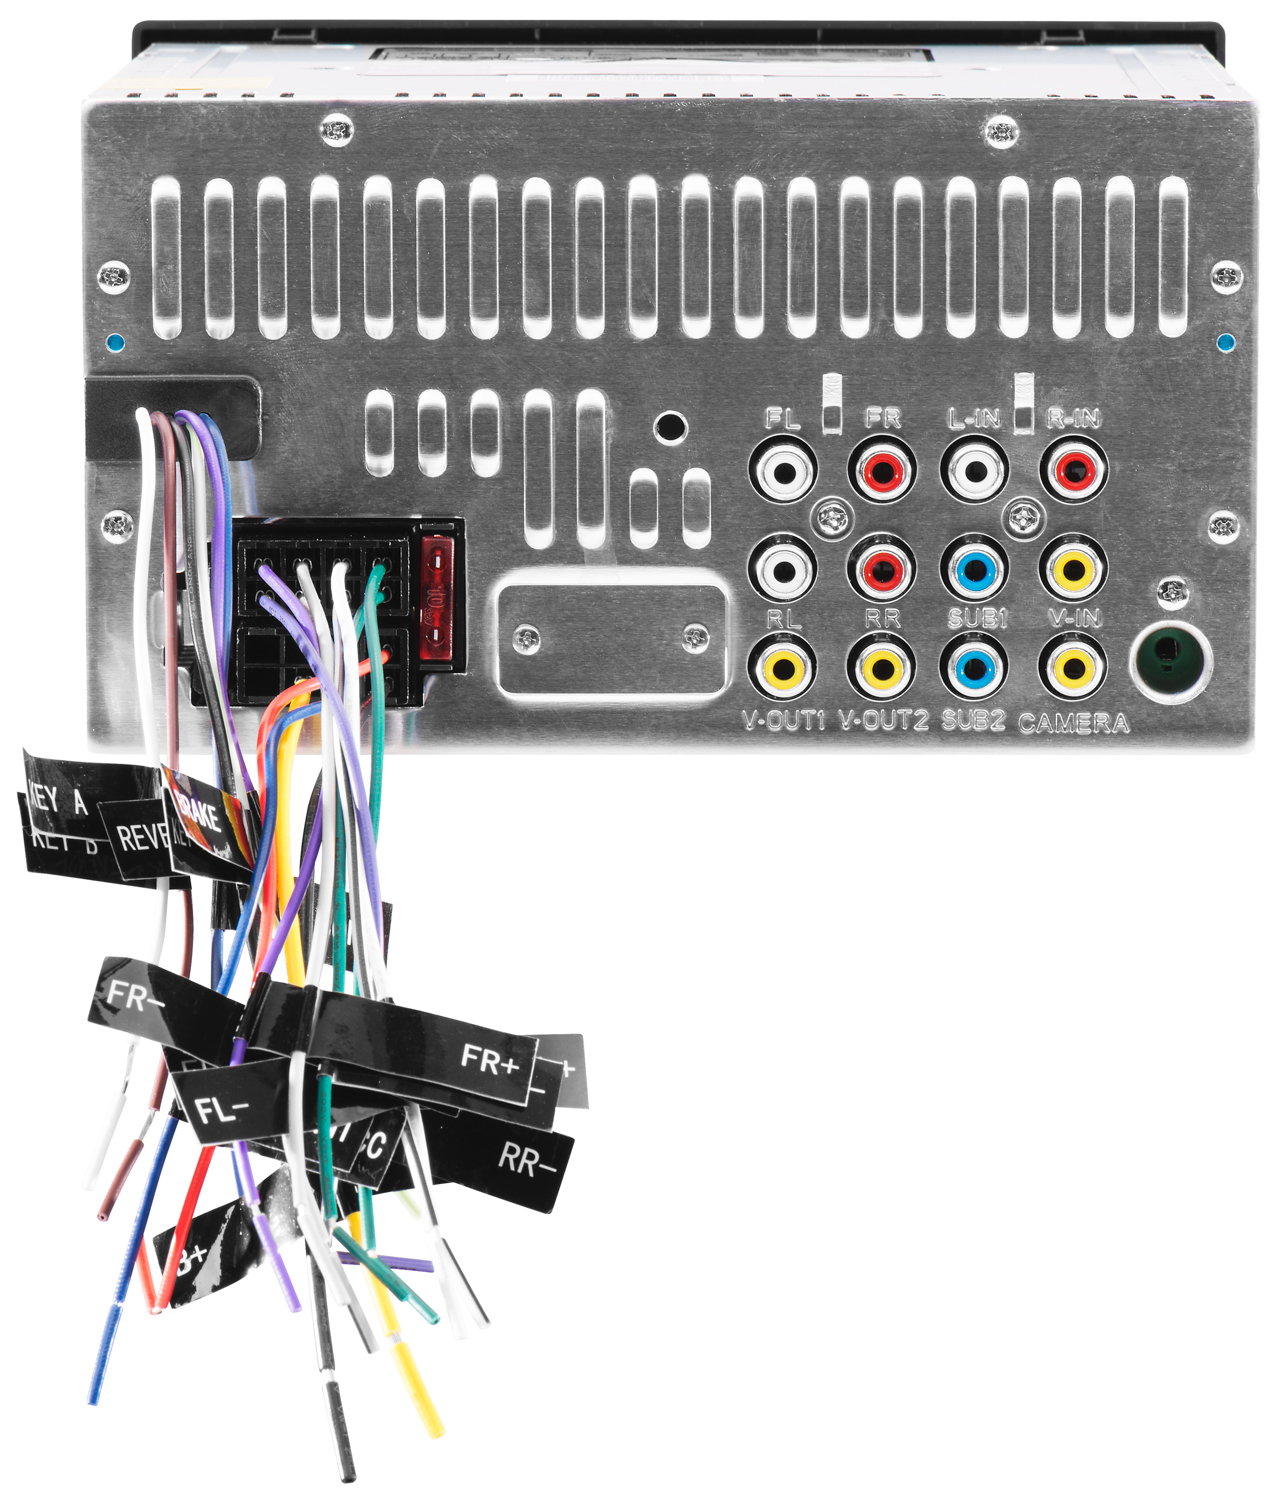 es_6754] boss dvd player wire diagram download diagram  iosto phon emba mohammedshrine librar wiring 101